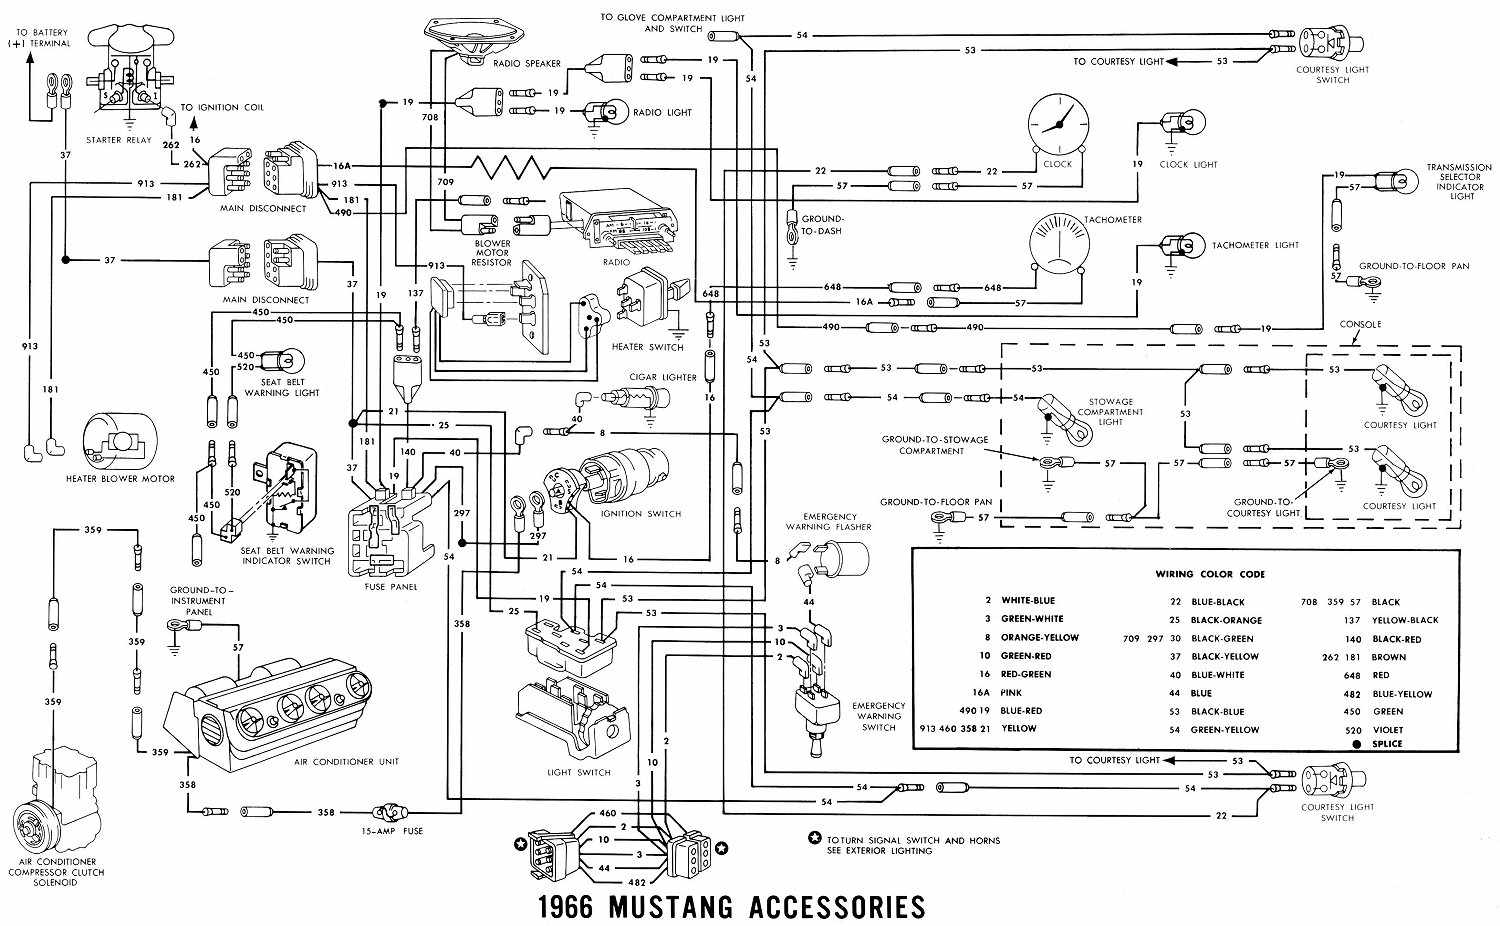 1966 mustang instrument cluster diagram custom wiring diagram u2022 rh littlewaves co